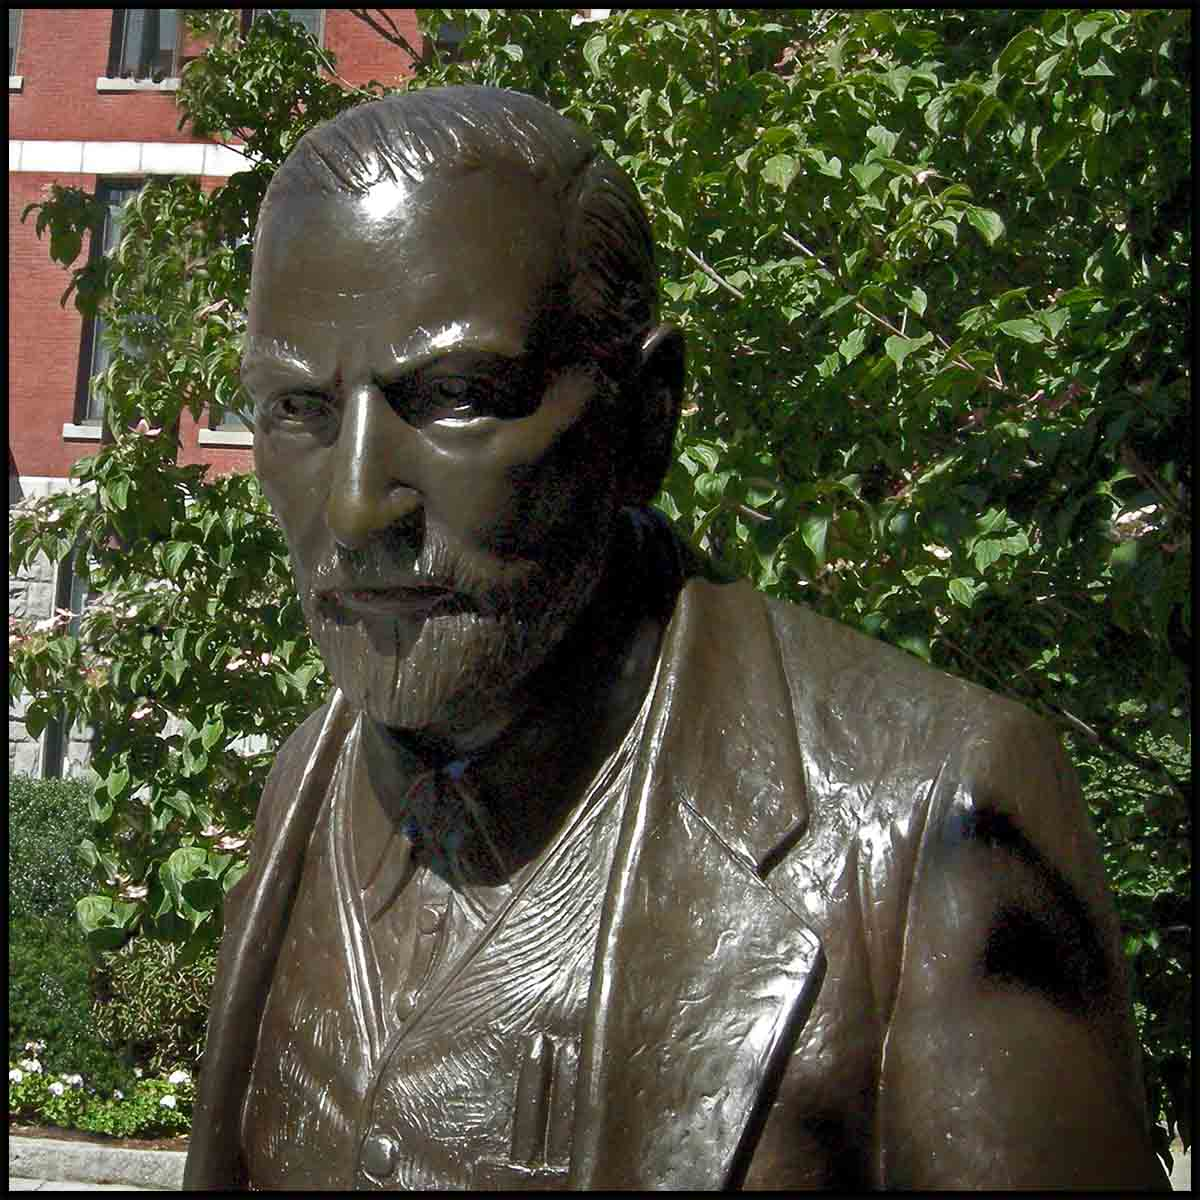 photo closeup of face of bronze sculpture of Sigmund Freud sitting on a stone bench in a plaza with trees behind